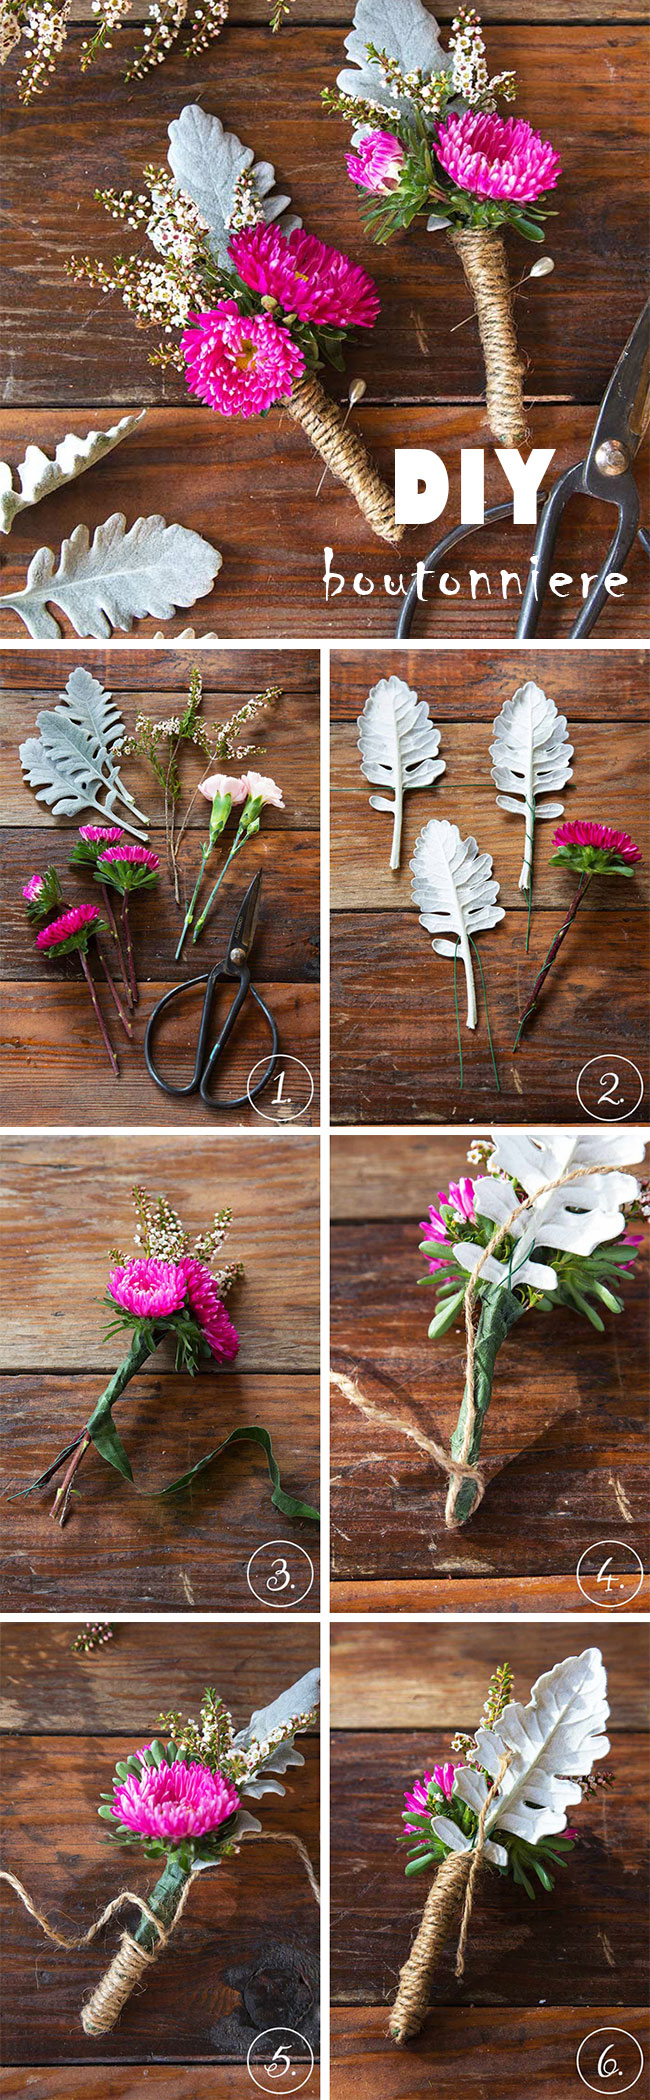 DIY Boutonniere for Your Groom and Groom's Men